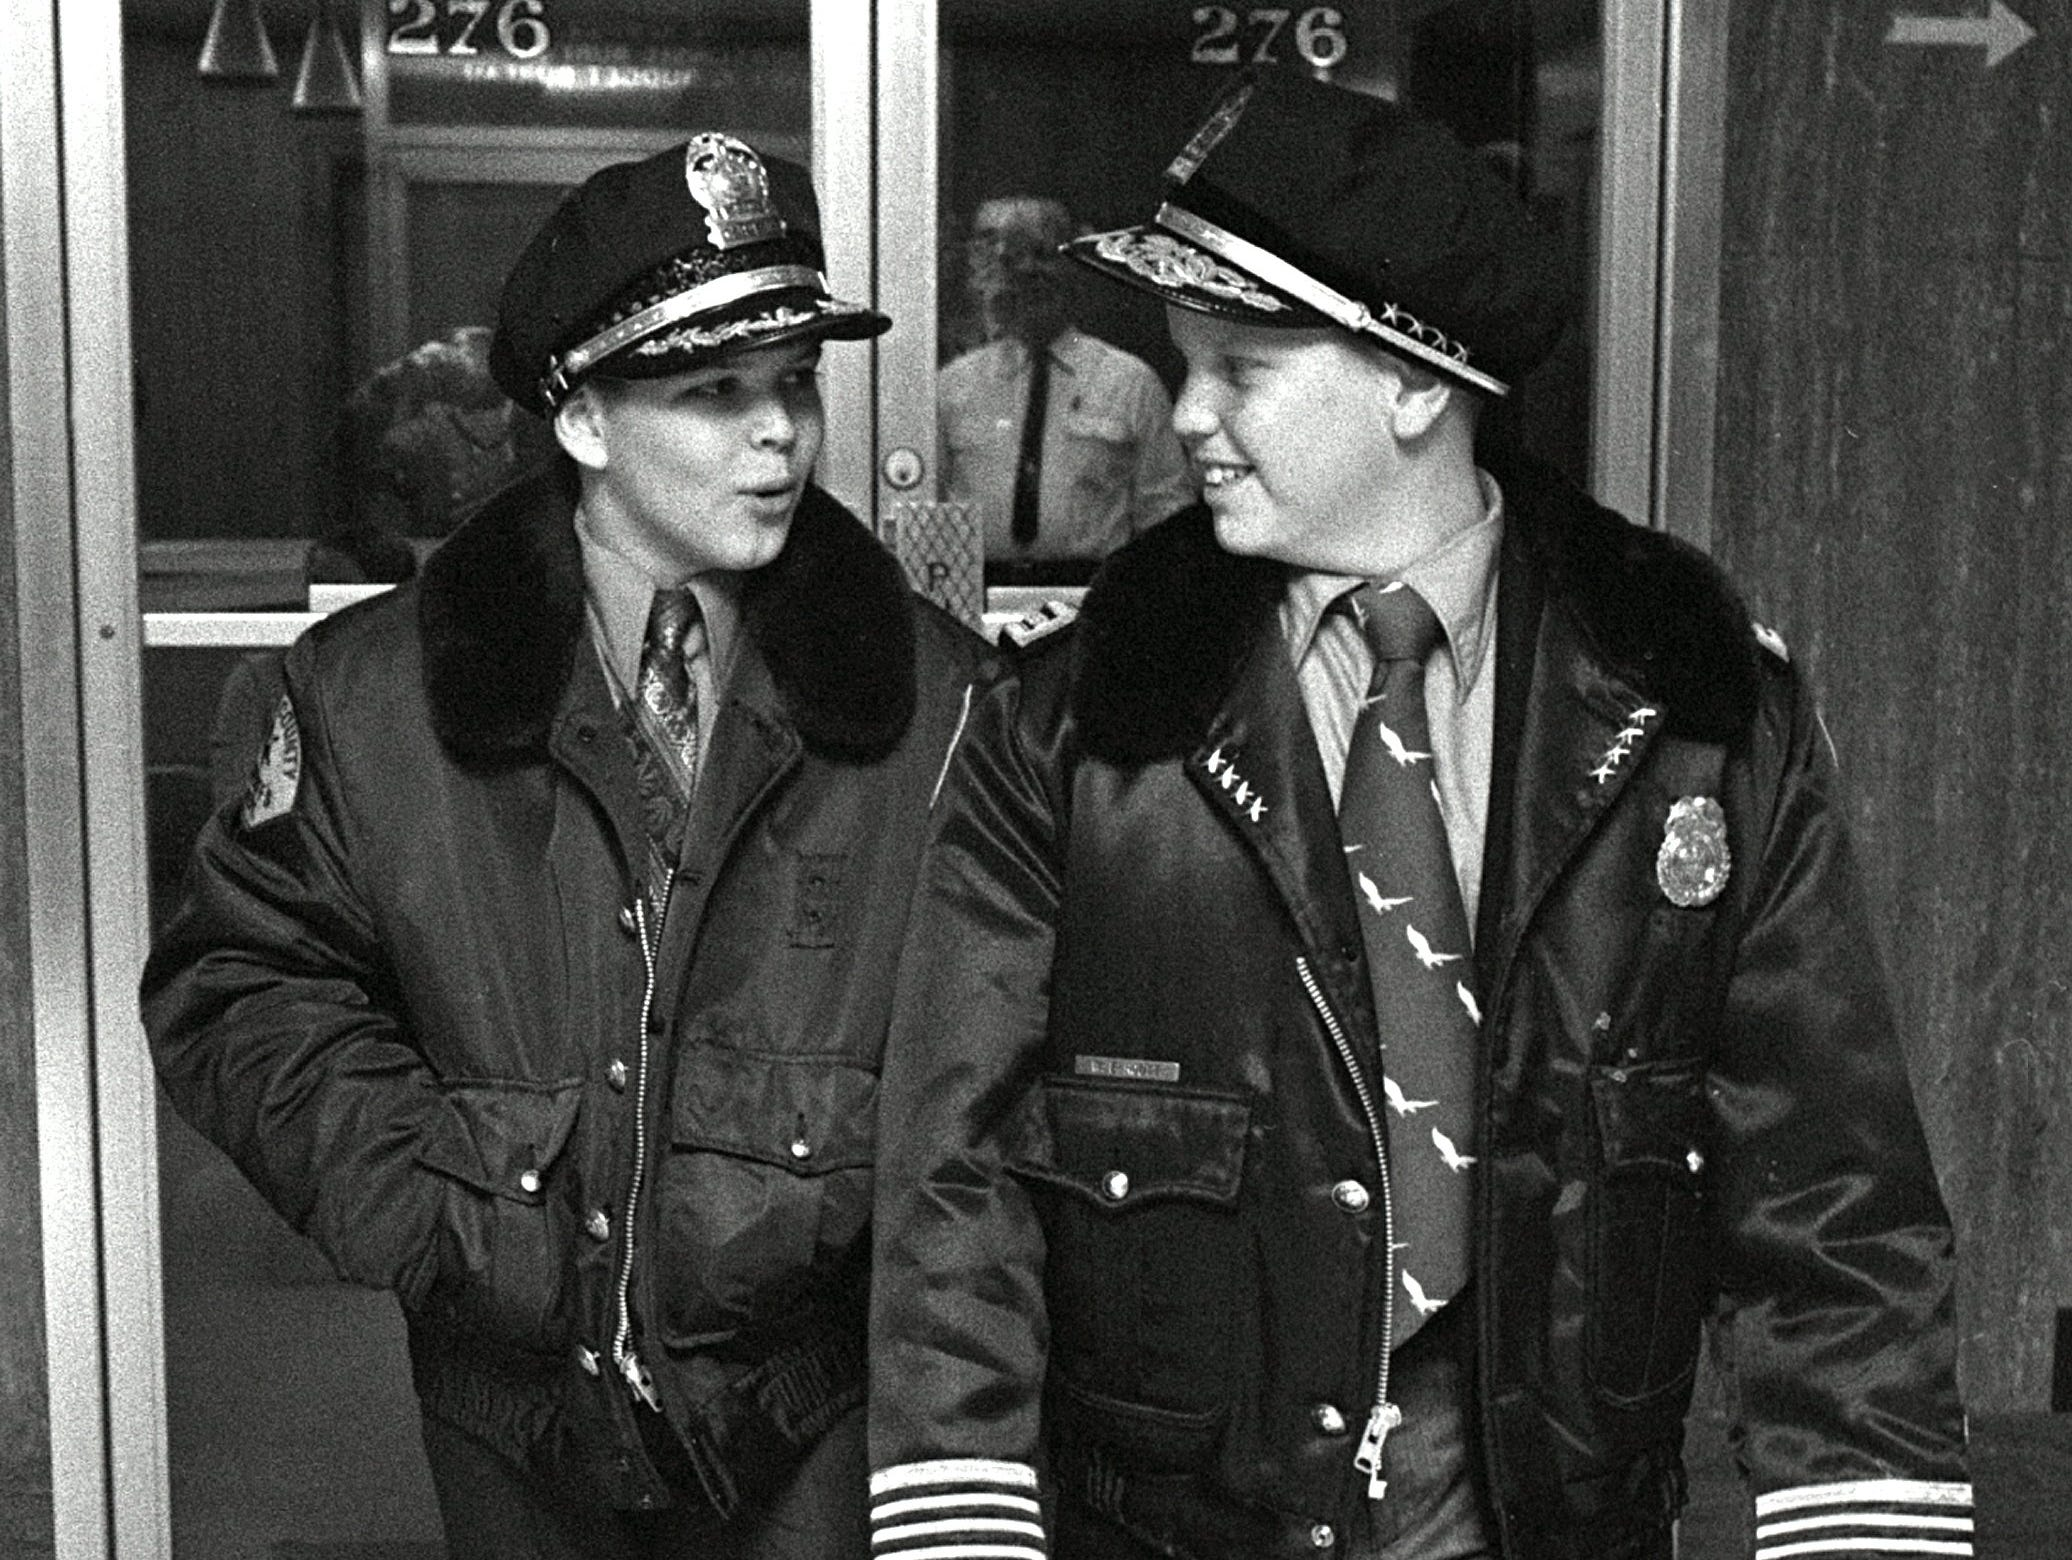 Tom Graves (Left) of 3192 Court and Jimmy Grace (Right), of 4752 Linda Lane, both 11, were named Junior Sheriff and Junior Police Chief in a ceremony at Police Headquarters on 5 Feb 1971.  They were selected from thousands of boys who competed in the Exchange Club's annual competition.  They will receive their badges and certificates at a Crime Prevention Week ceremony at the Sheraton-Peabody Hotel.